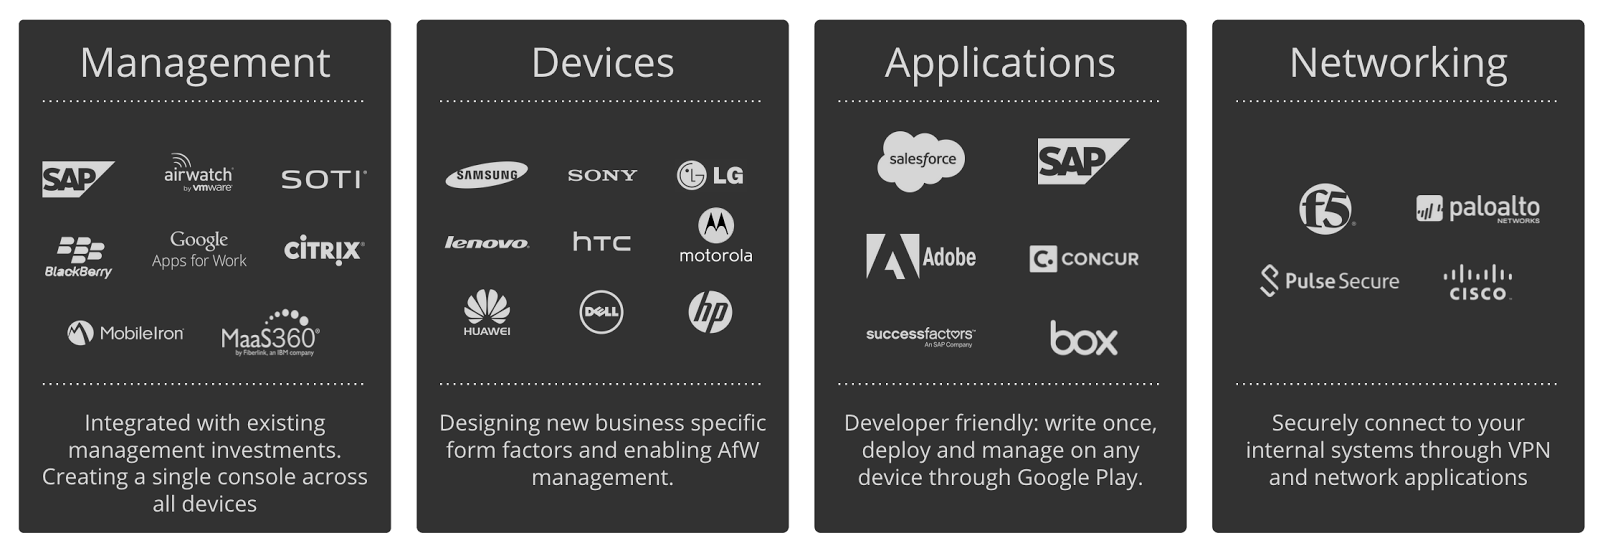 Google's Android for Work partners